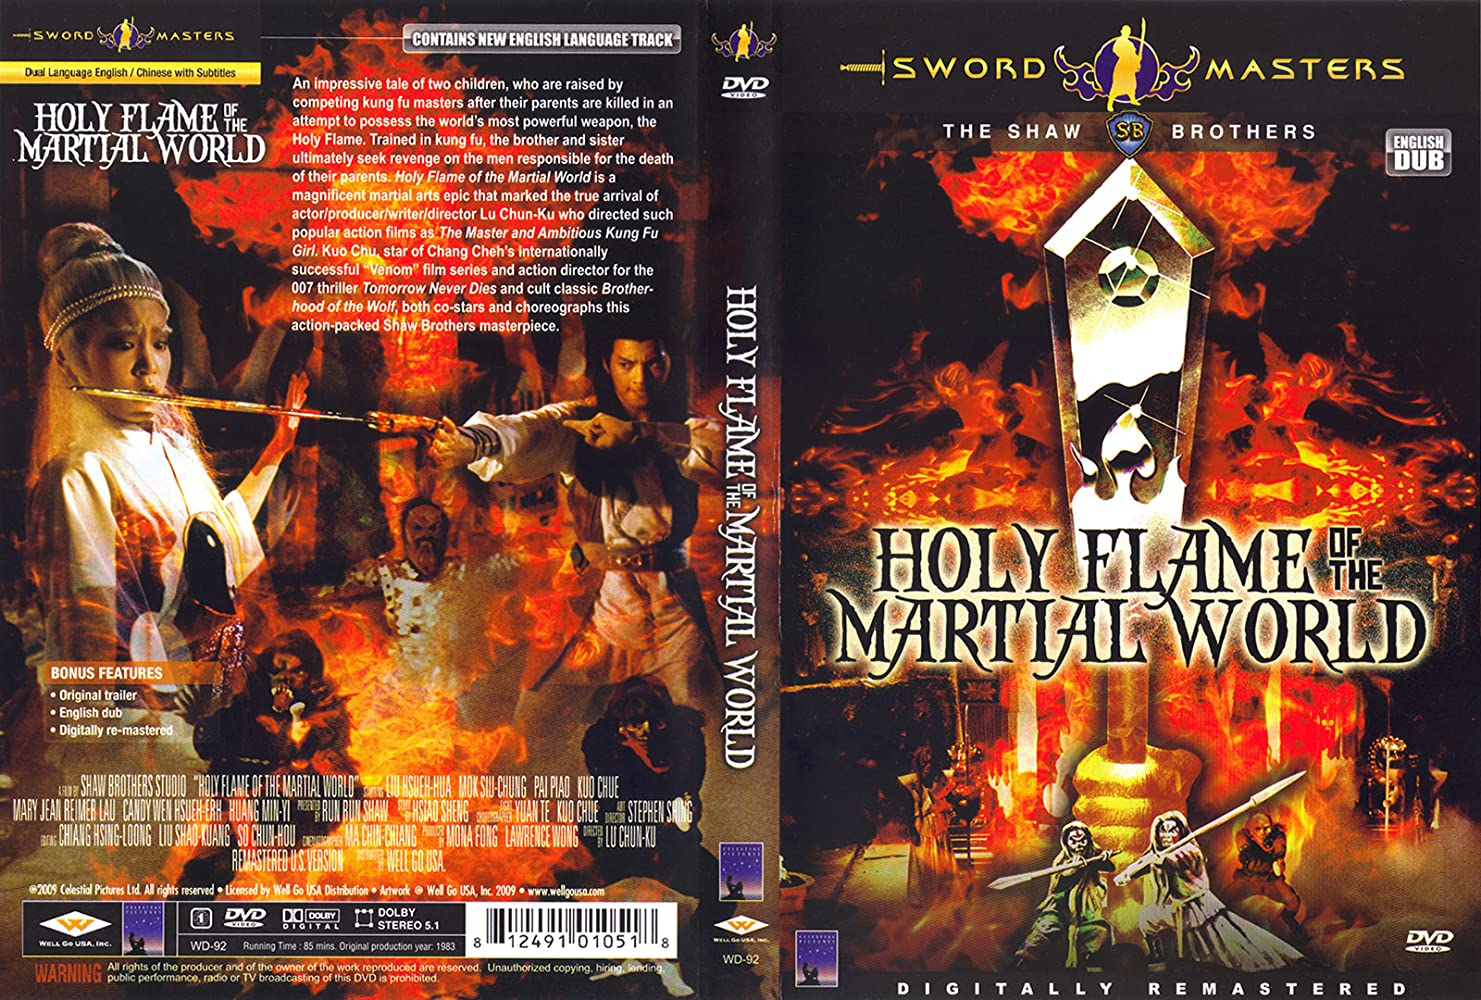 holy flame of the martial world (1983)